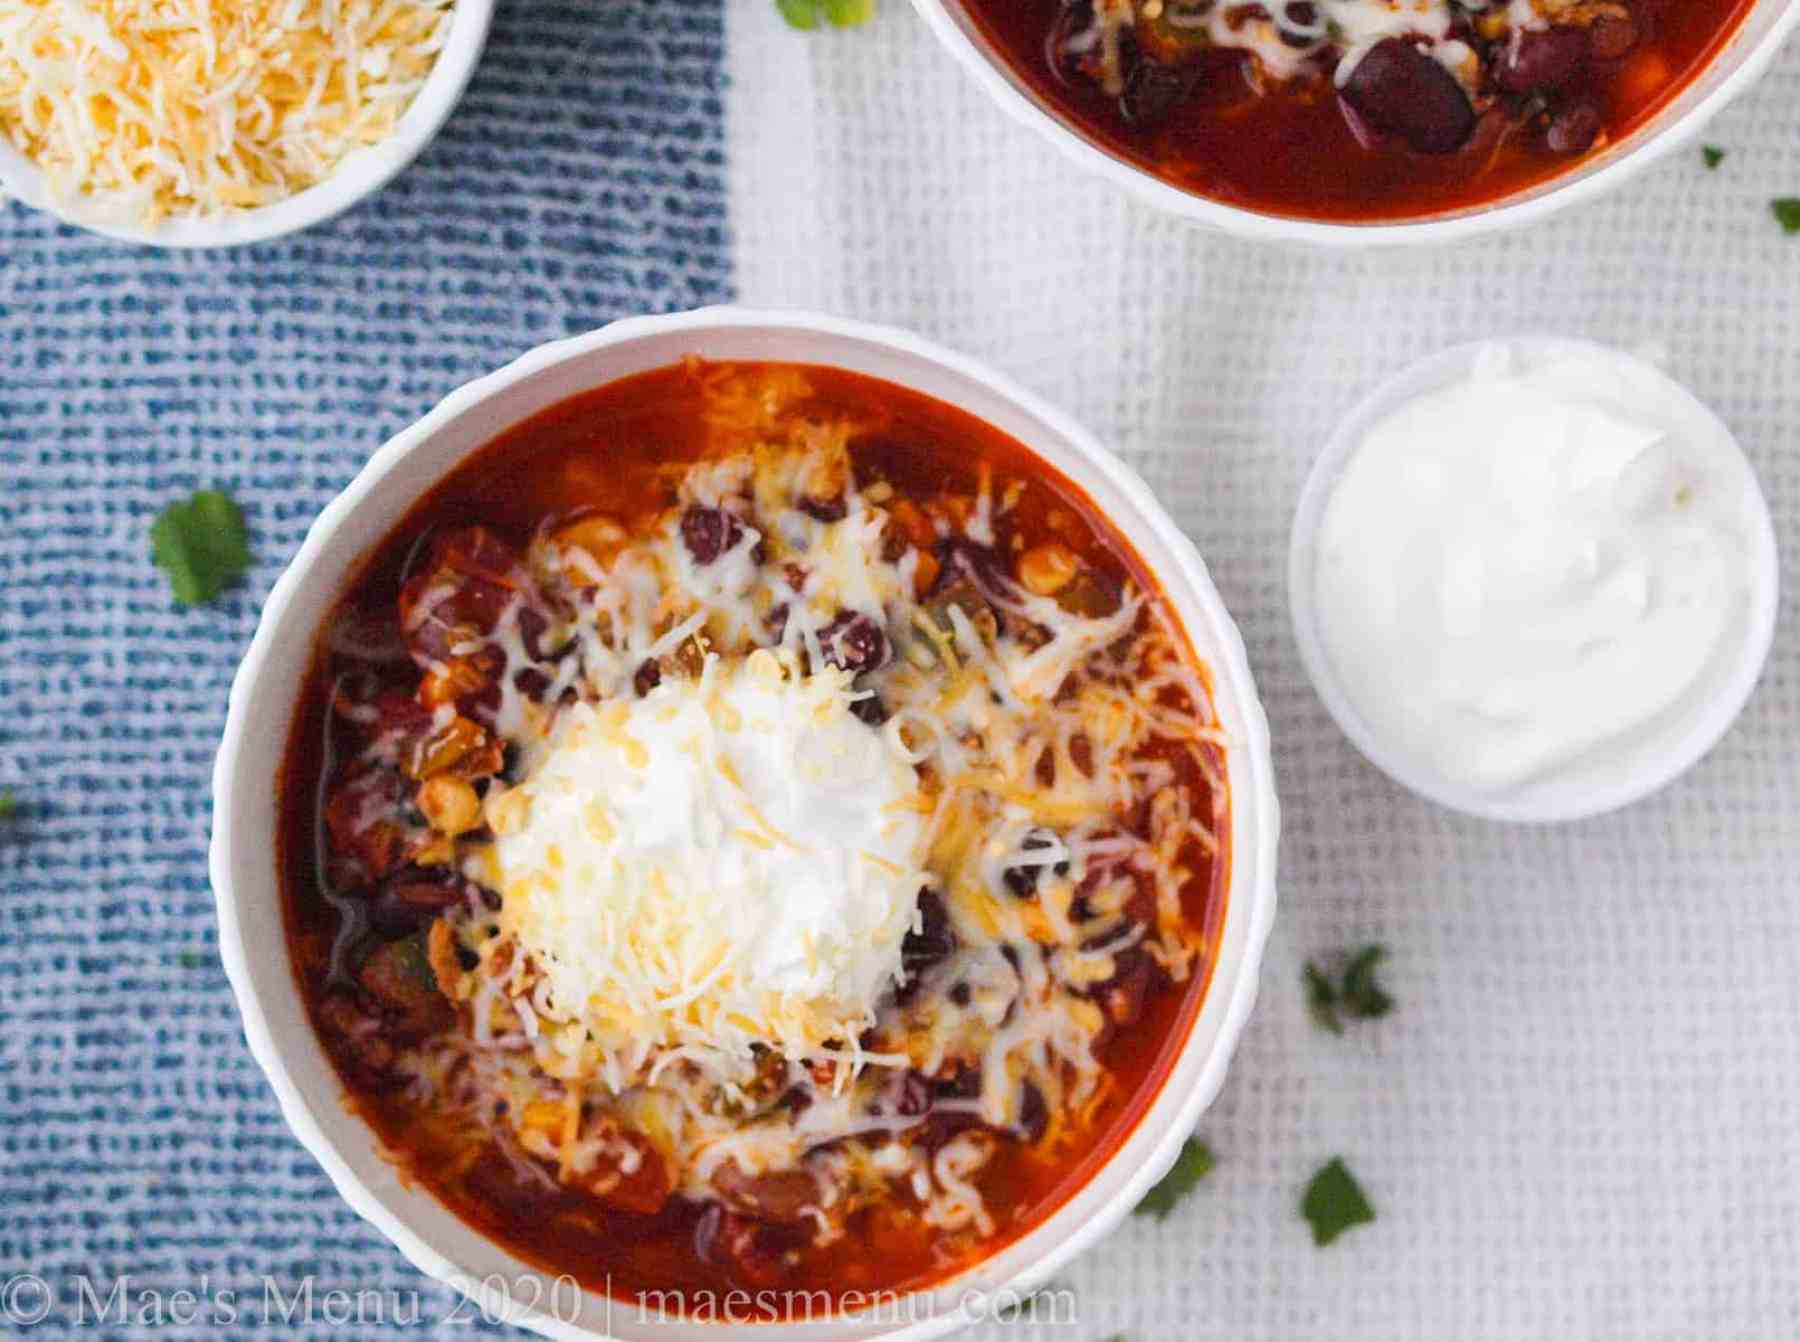 Two bowls of instant turkey chili soup.